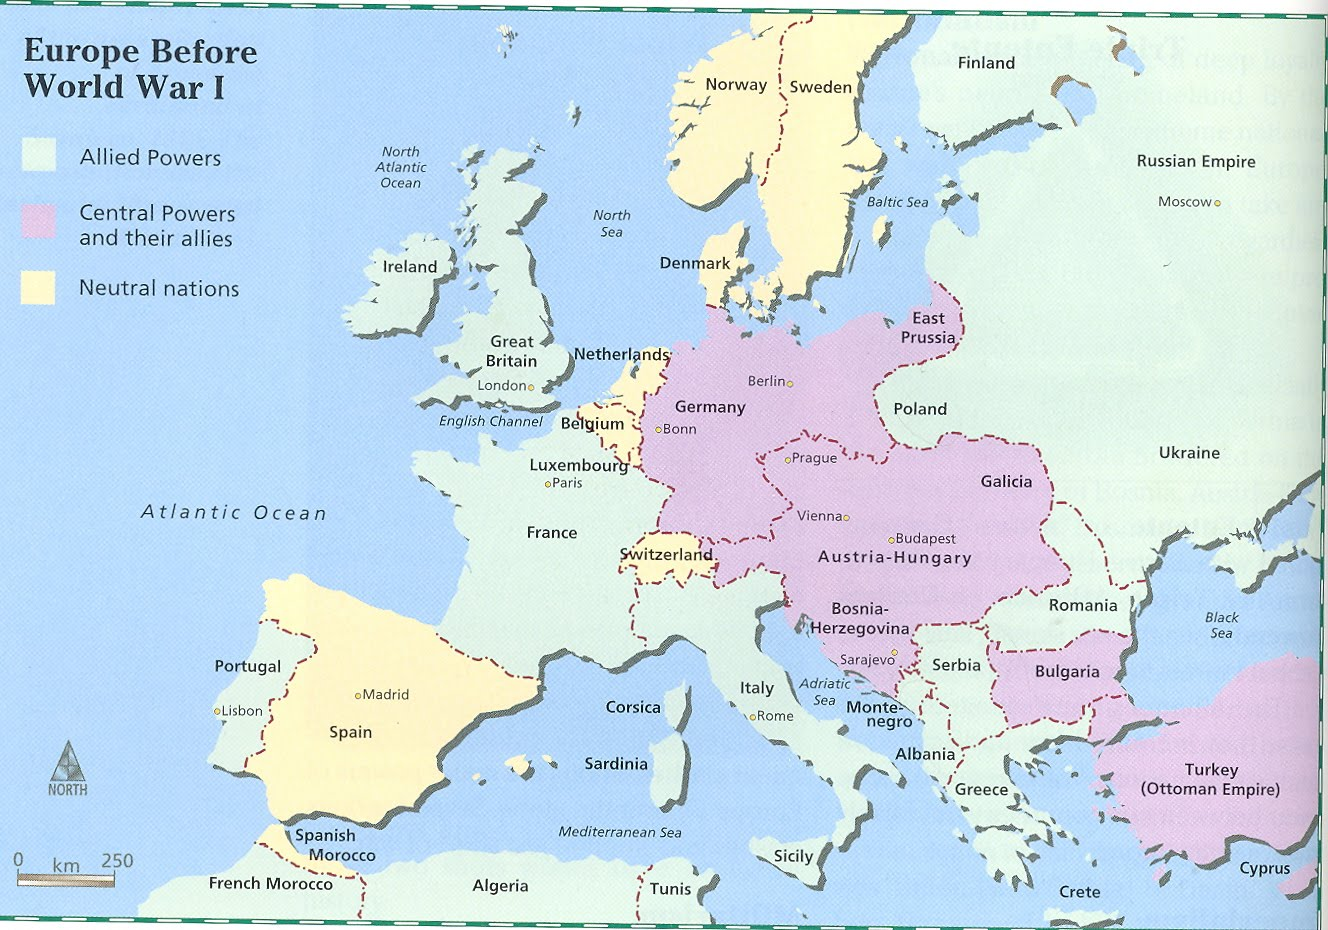 An introduction to the european socities prior to world war one